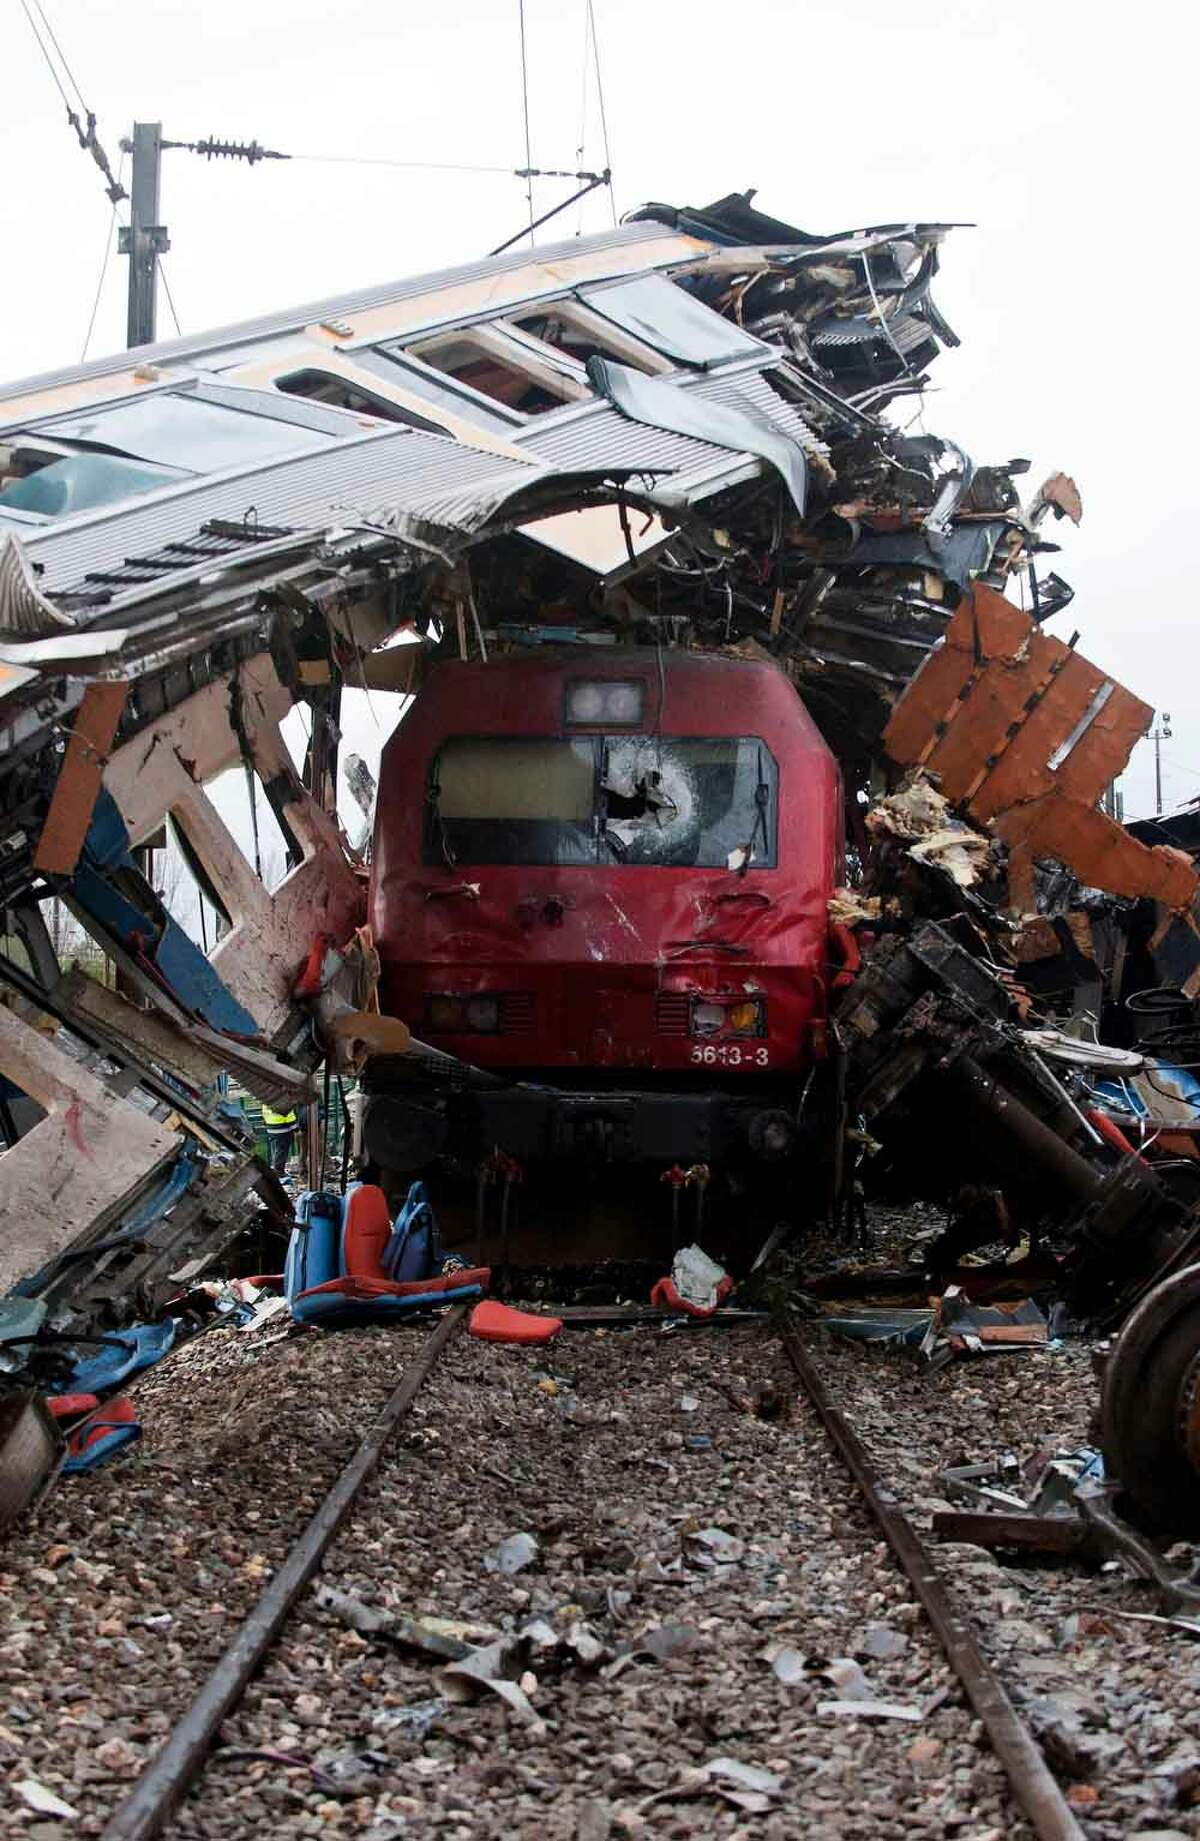 A train sits beneath the carriage of another train after a train crash at a station in Alfarelos, Portugal Tuesday Jan. 22, 2013. Emergency services say a high-speed intercity train rear-ended a local train waiting to enter a station in central Portugal, derailing several carriages leaving a pile of wreckage on Portugalís main north-south line, slightly injuring 21 people. Officials said the local train was waiting to pull into a station near Coimbra, 200 kilometers (120 miles) north of the capital, Lisbon, when the northbound intercity train slammed into it from behind at 9.15 p. m. (2100 GMT) on Monday. (AP Photo/Miguel Teixeira)